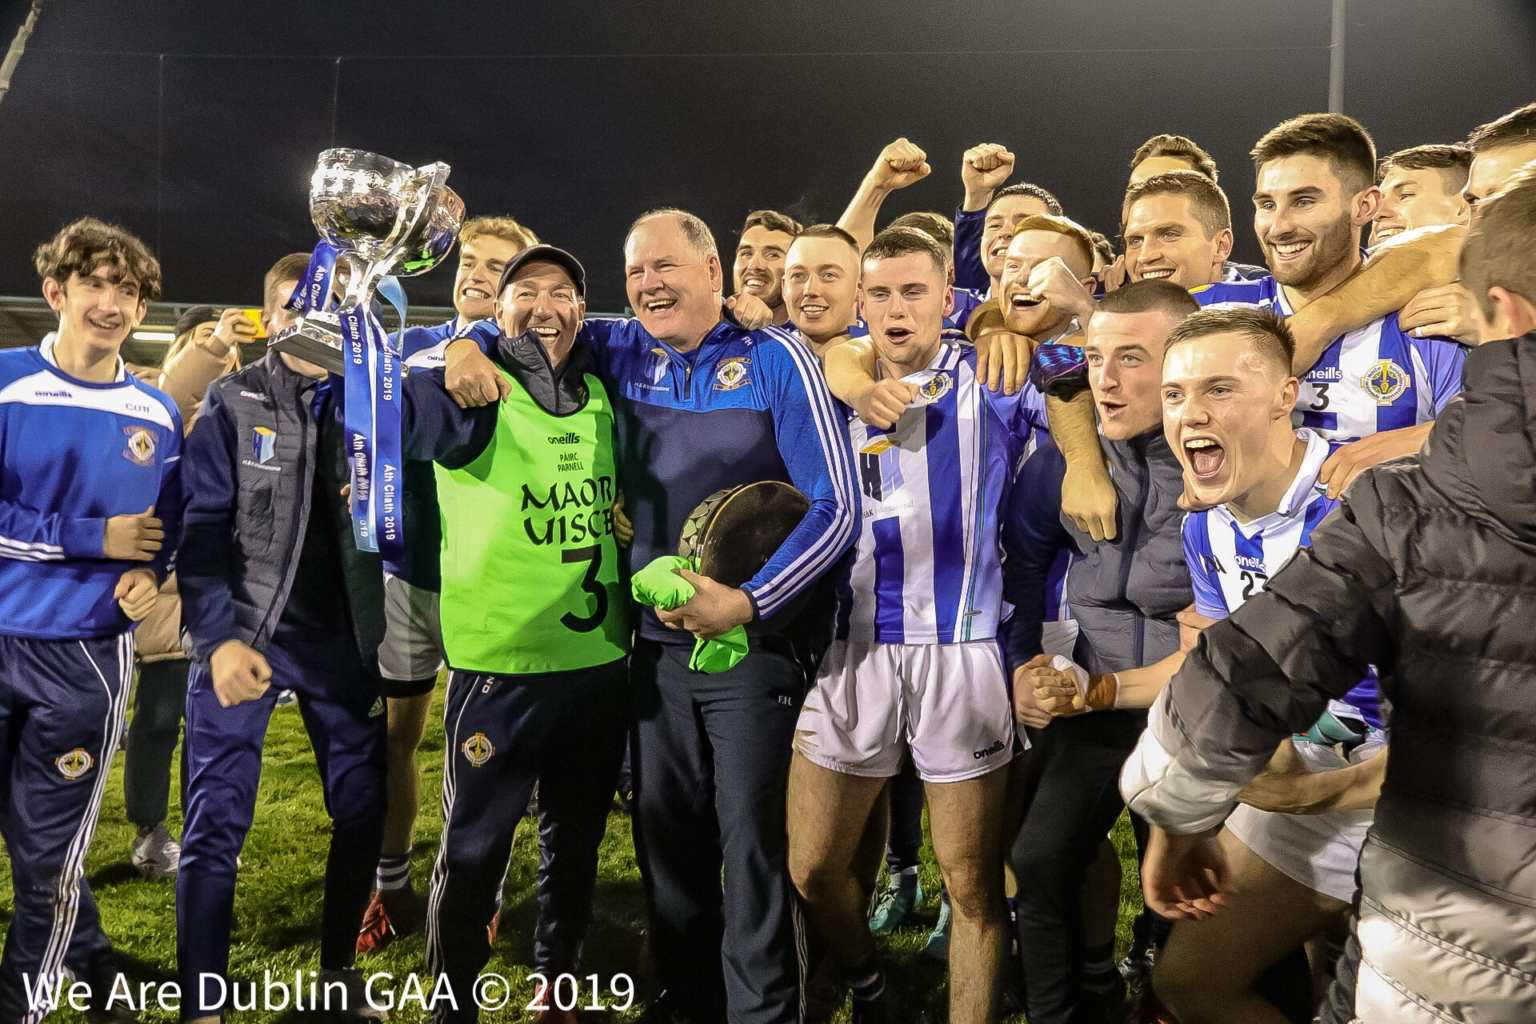 Ballyboden St Endas players and management celebrate on the pitch after winning the Senior County Final